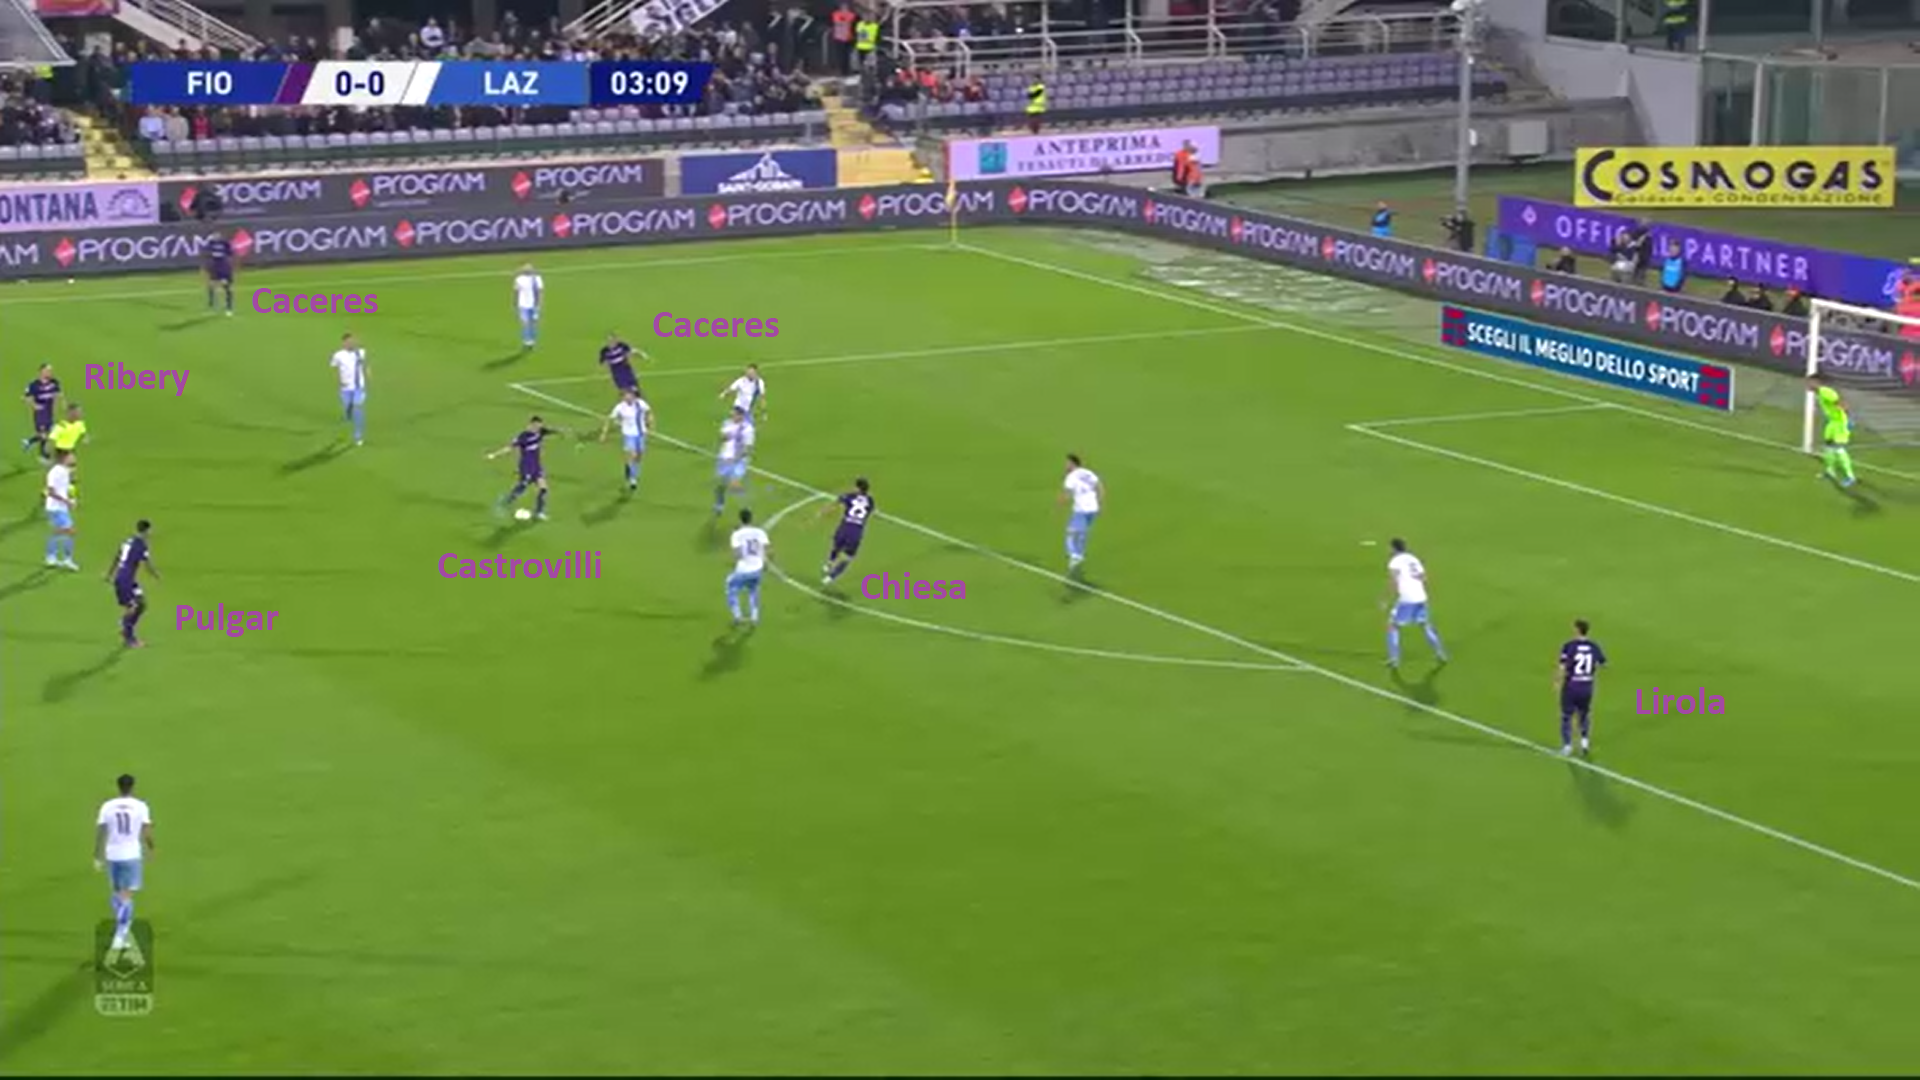 Serie A 2019/20: Fiorentina vs Lazio - tactical analysis tactics